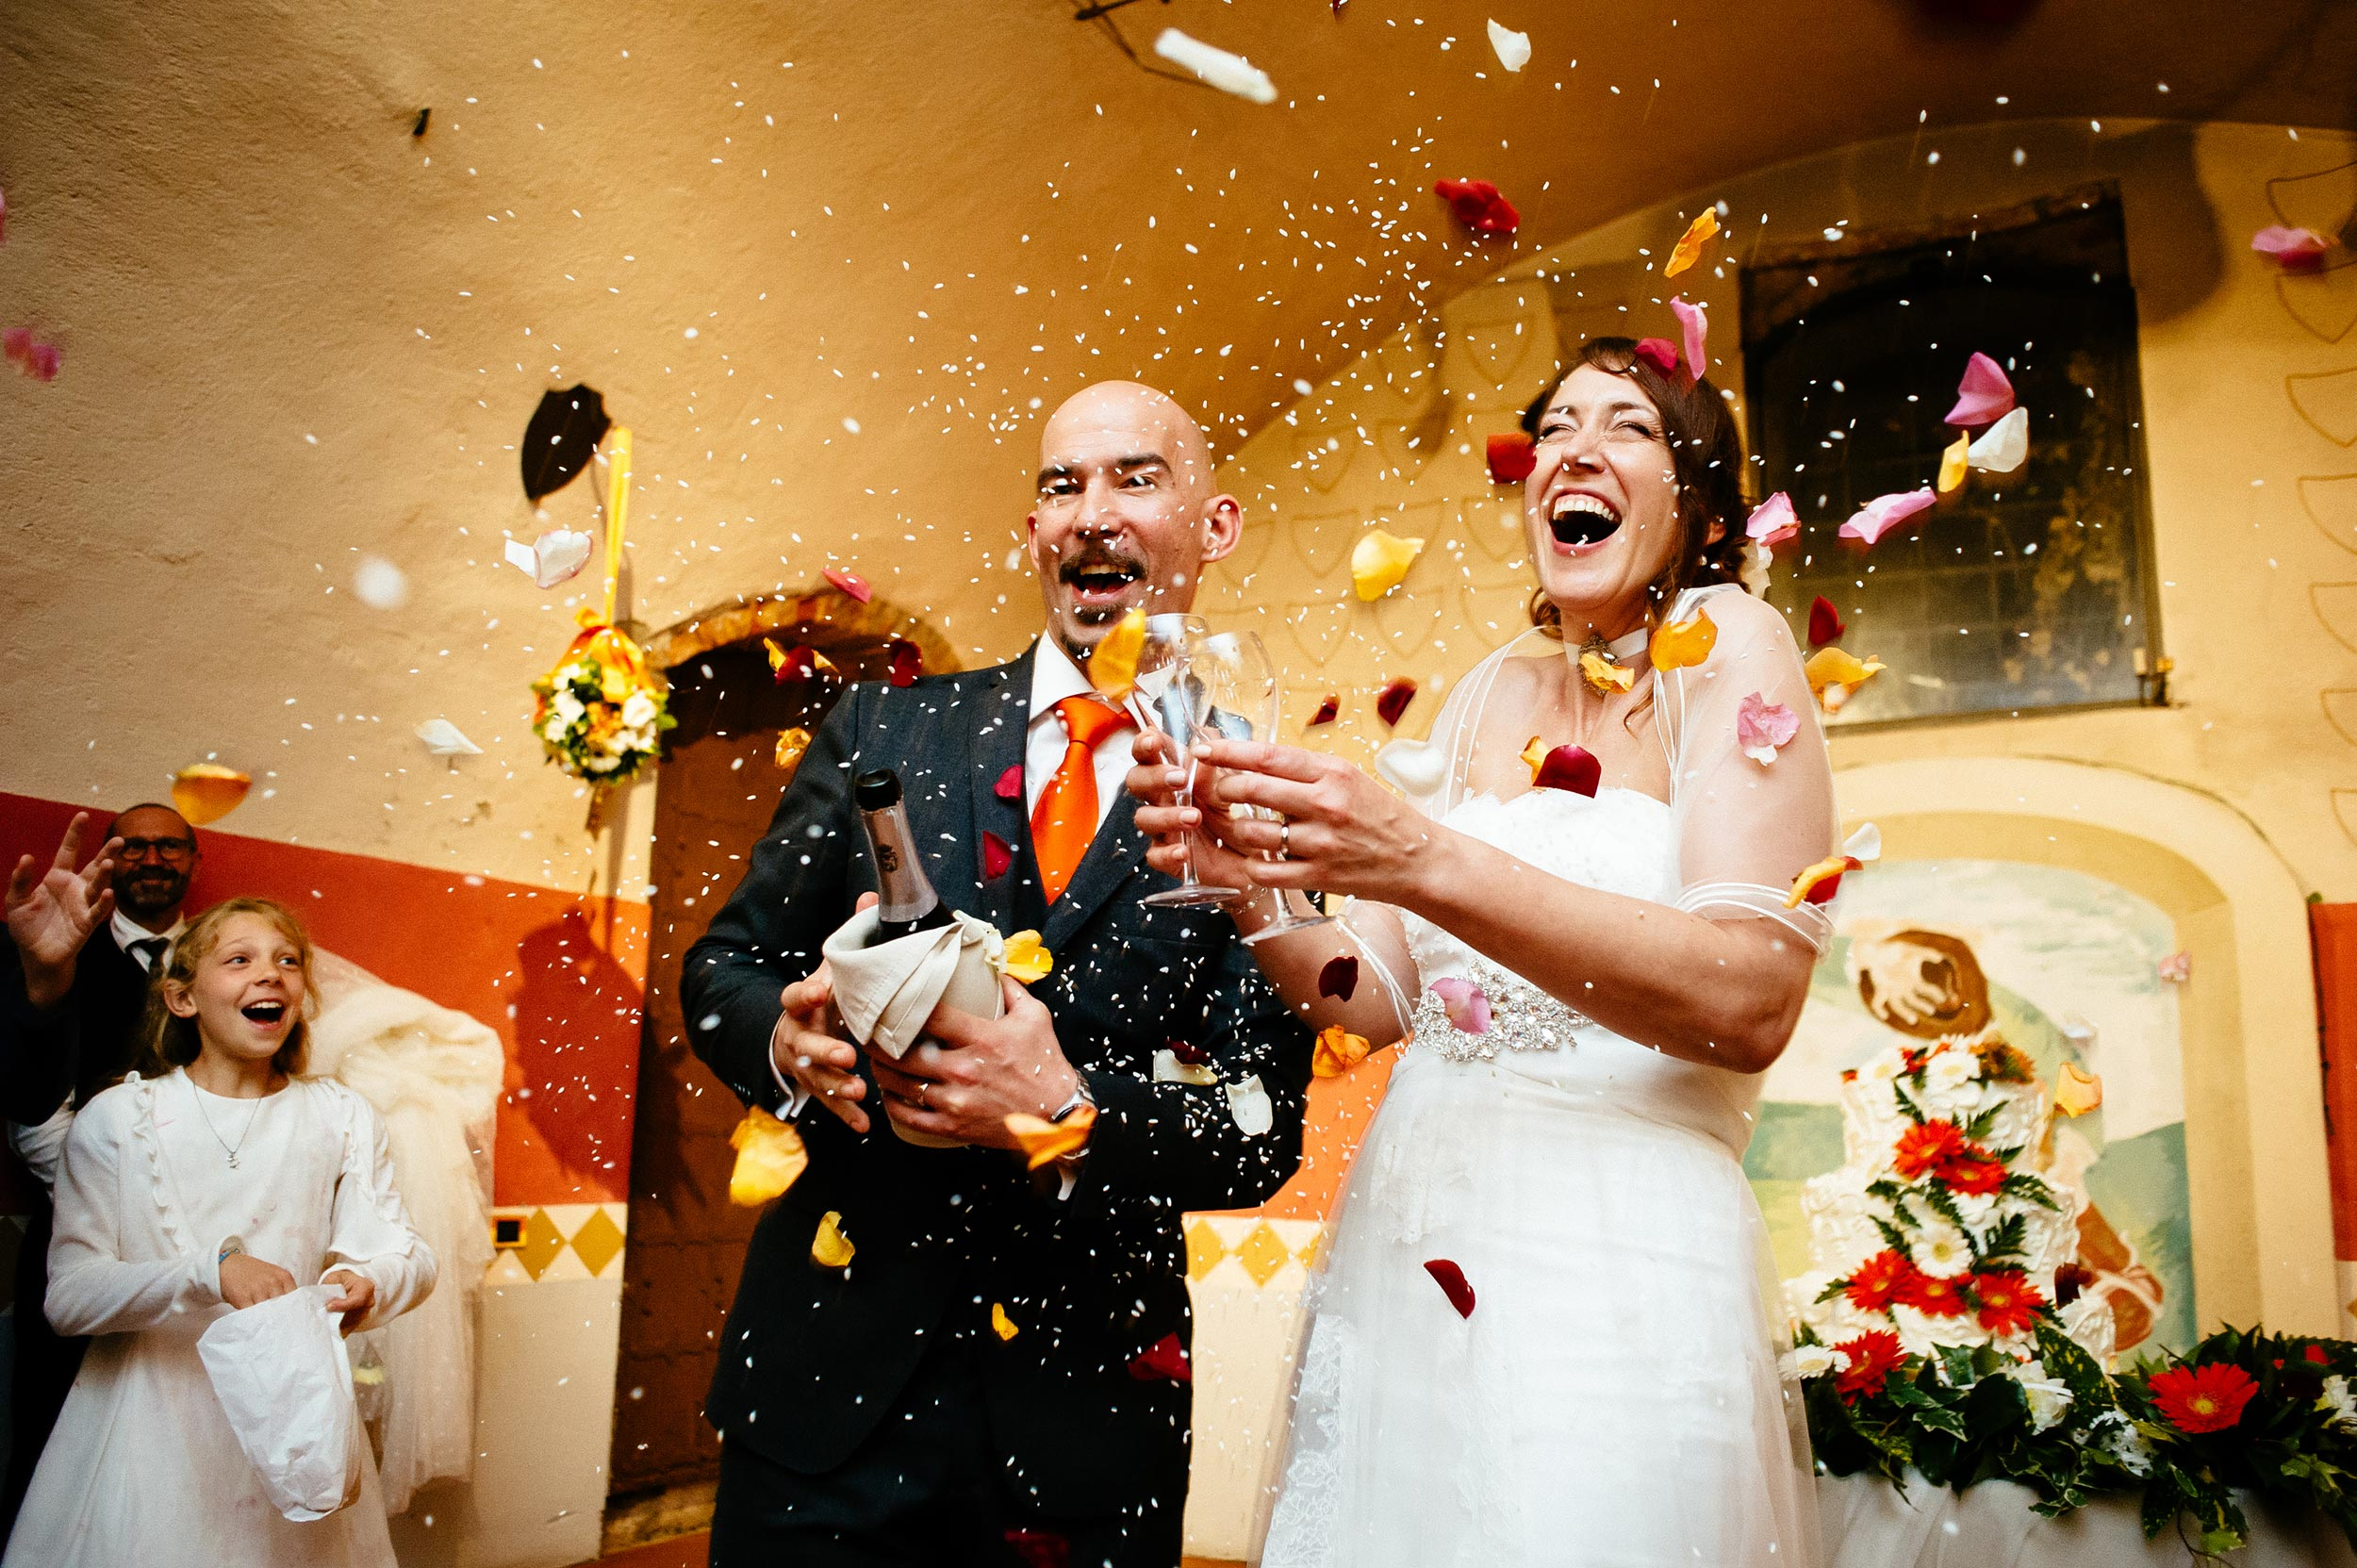 wedding-toast-with-rice-and-petals-confetti-explosion.jpg